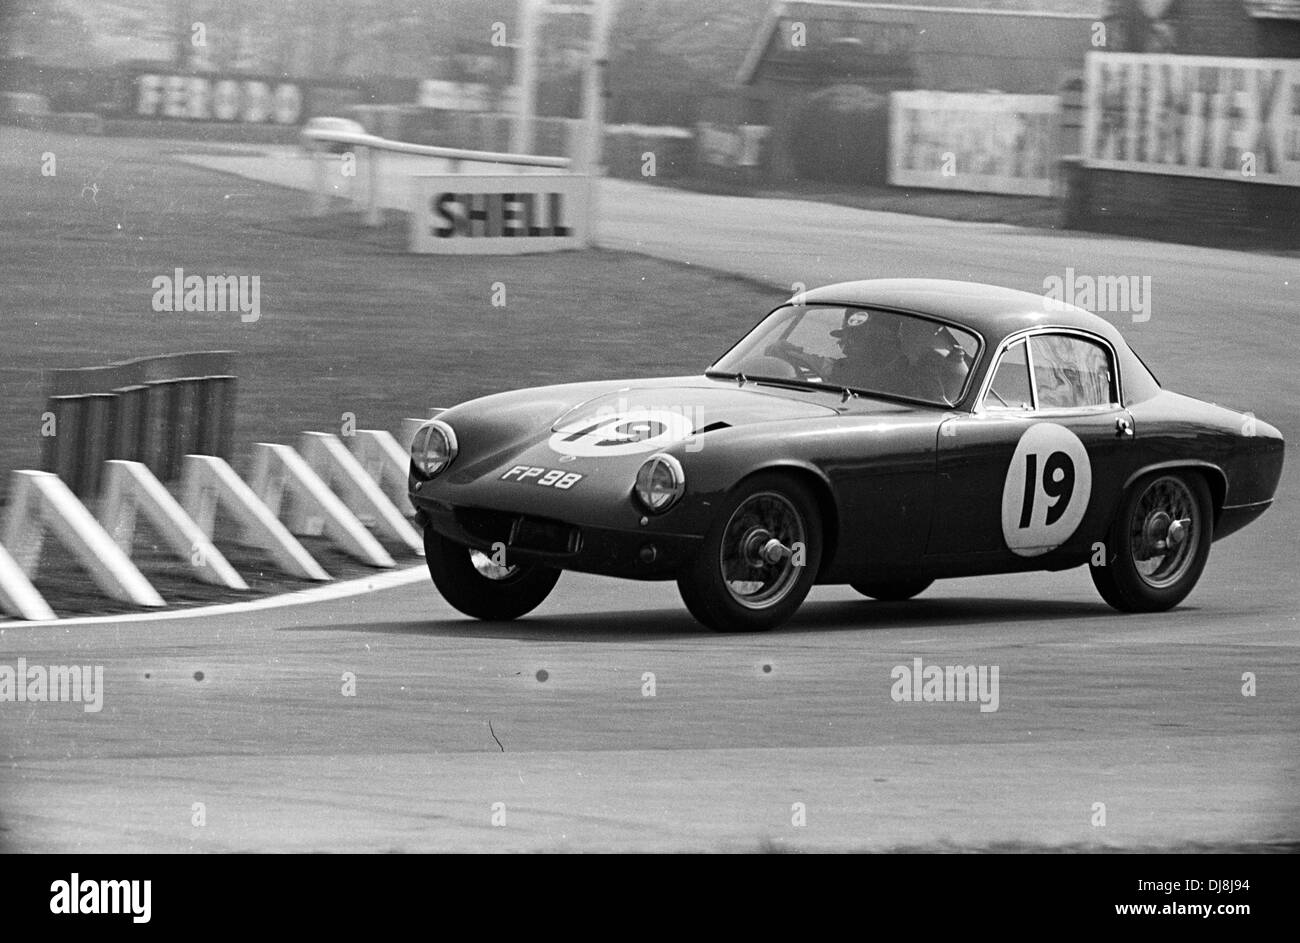 a lotus elite racing into tatts corner in the aintree 200 race england 30 april